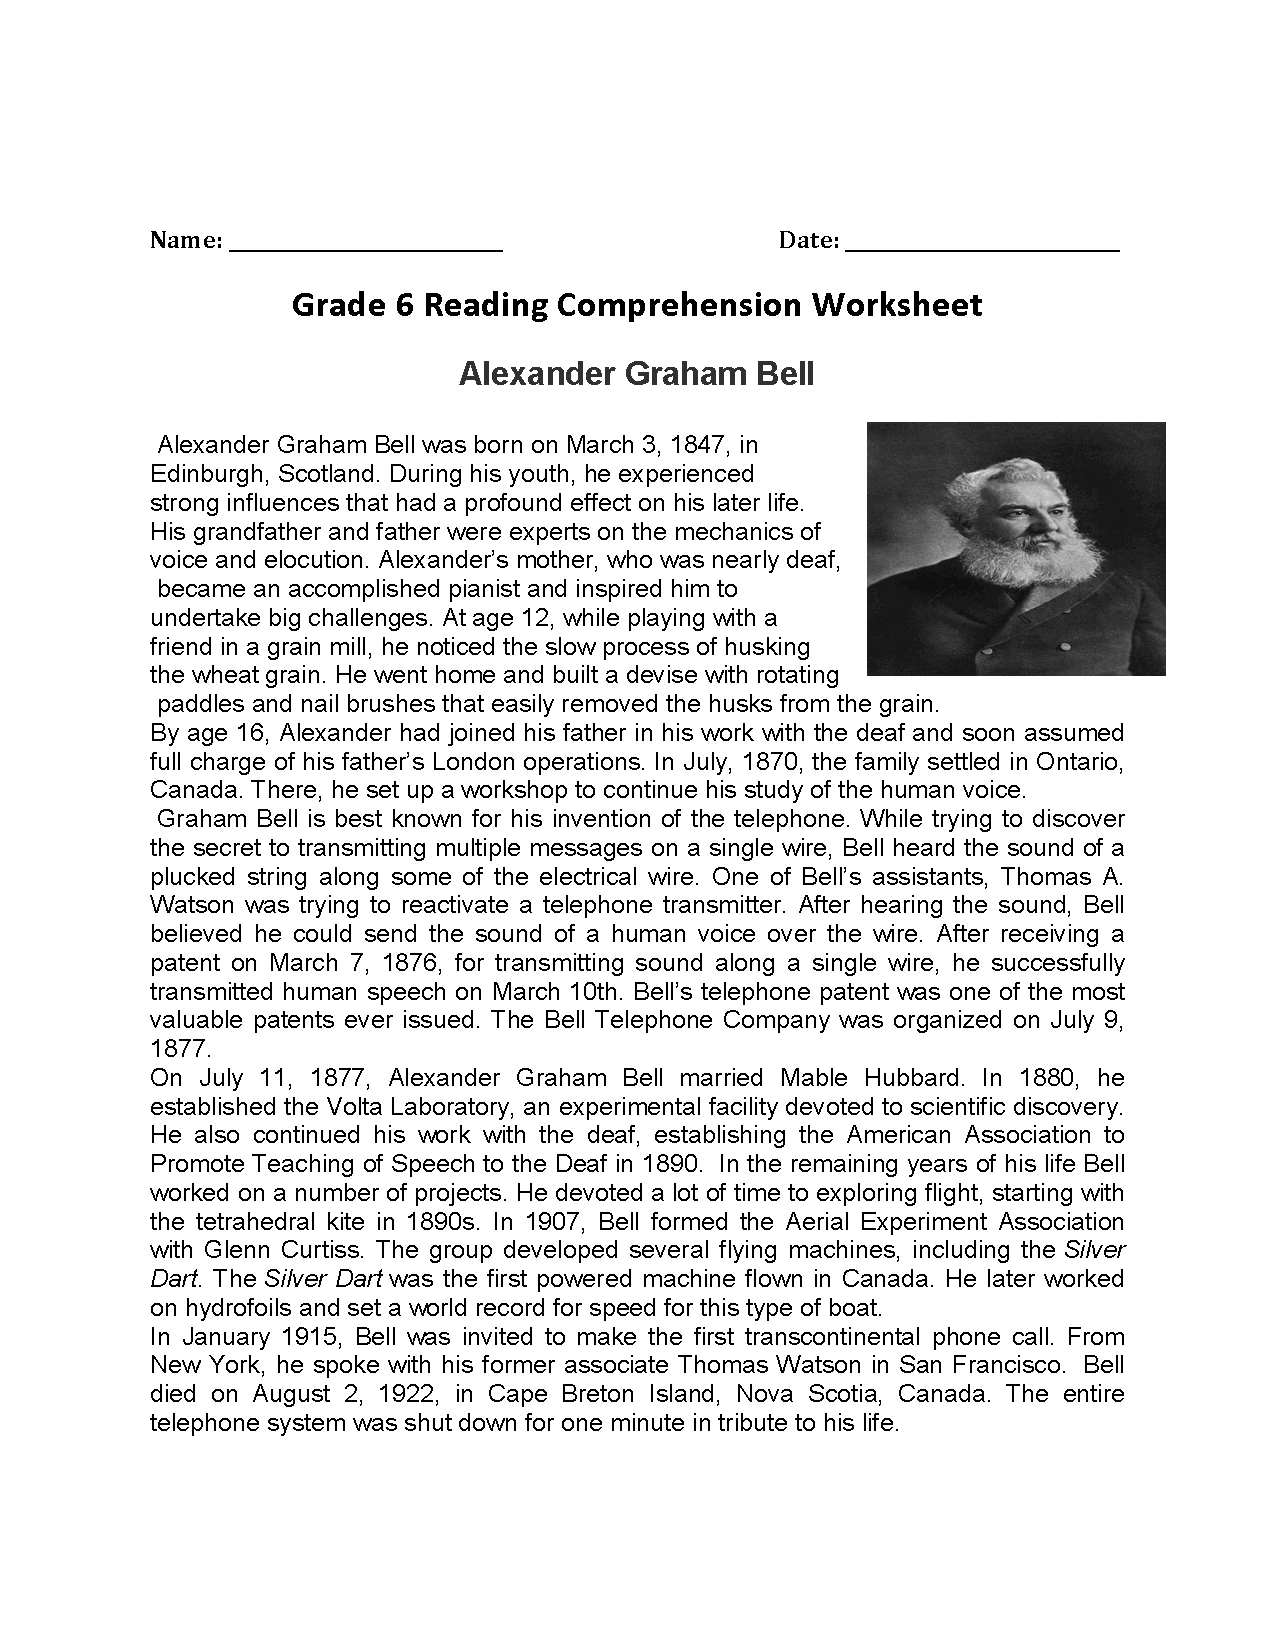 Reading Worksheets | Sixth Grade Reading Worksheets | Reading Worksheets For 6Th Grade Printable